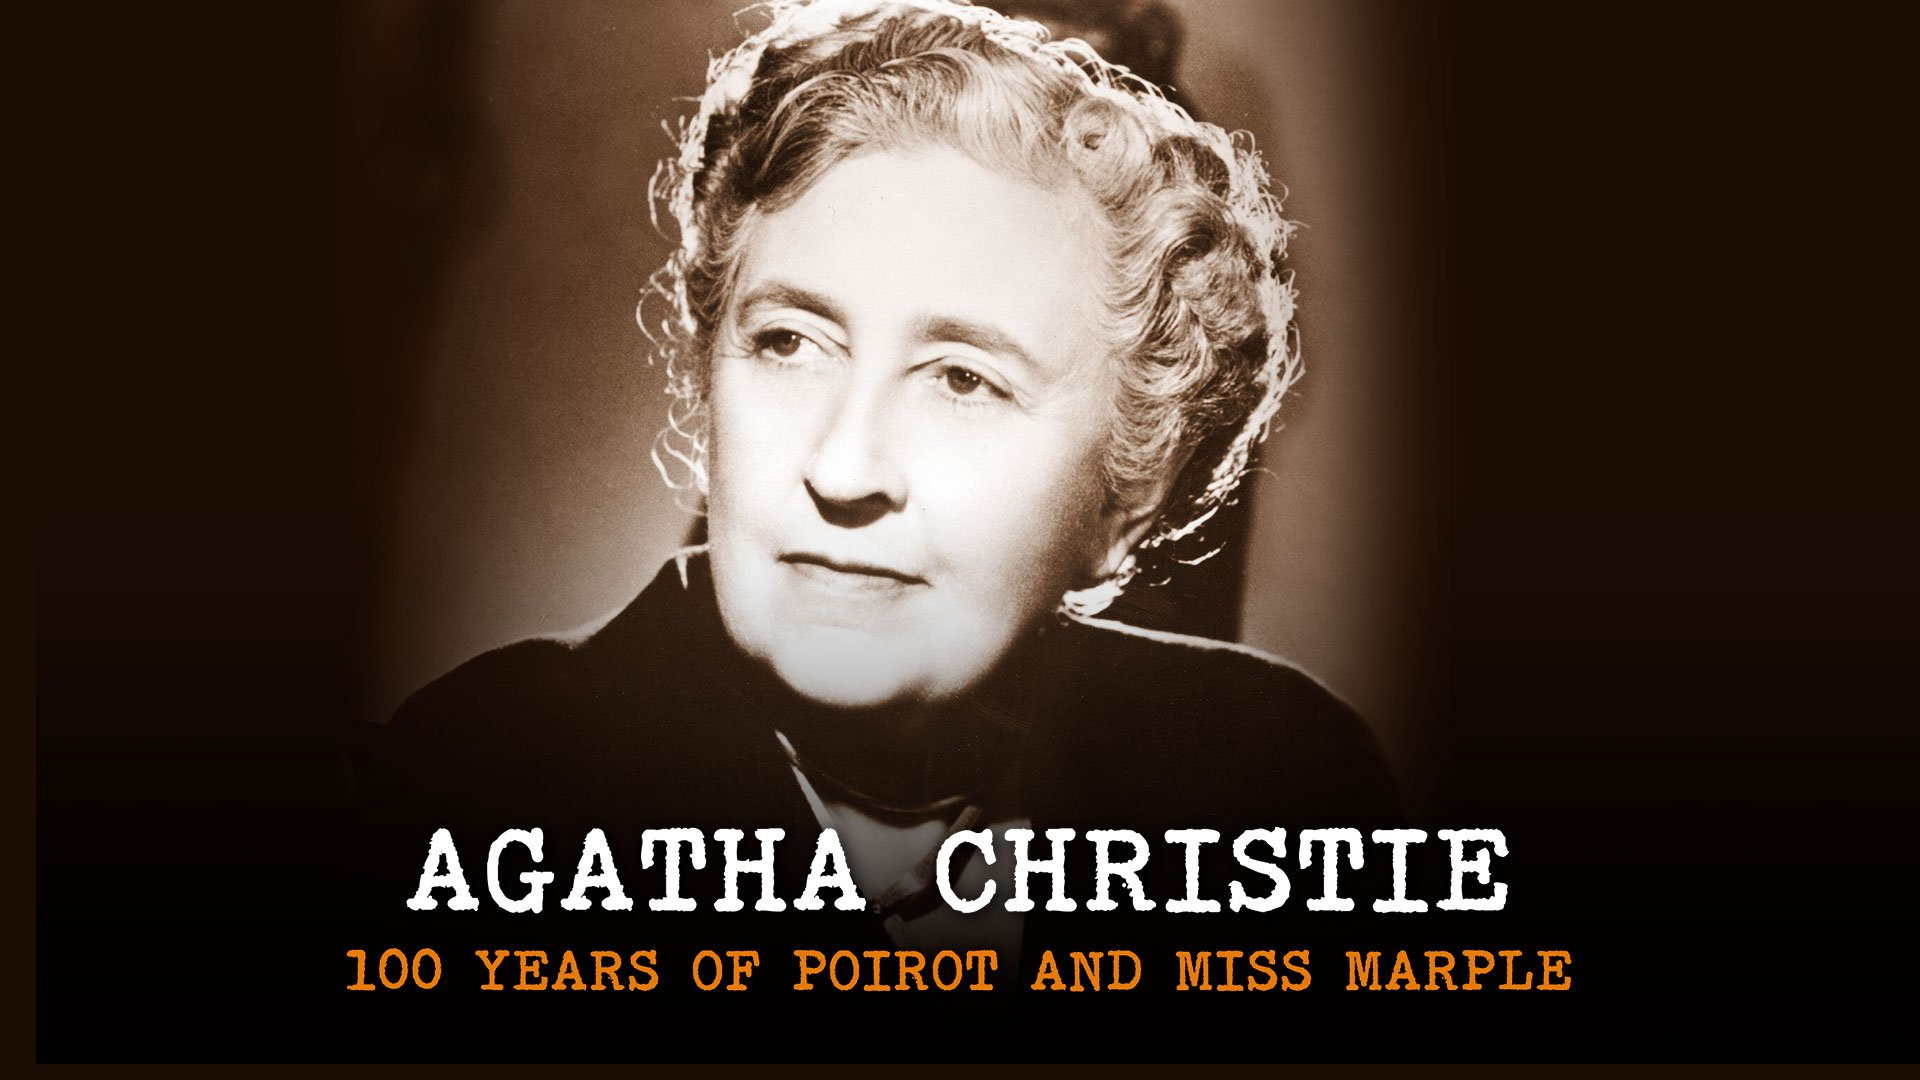 Agatha Christie: 100 Years of Poirot and Miss Marple on BritBox UK